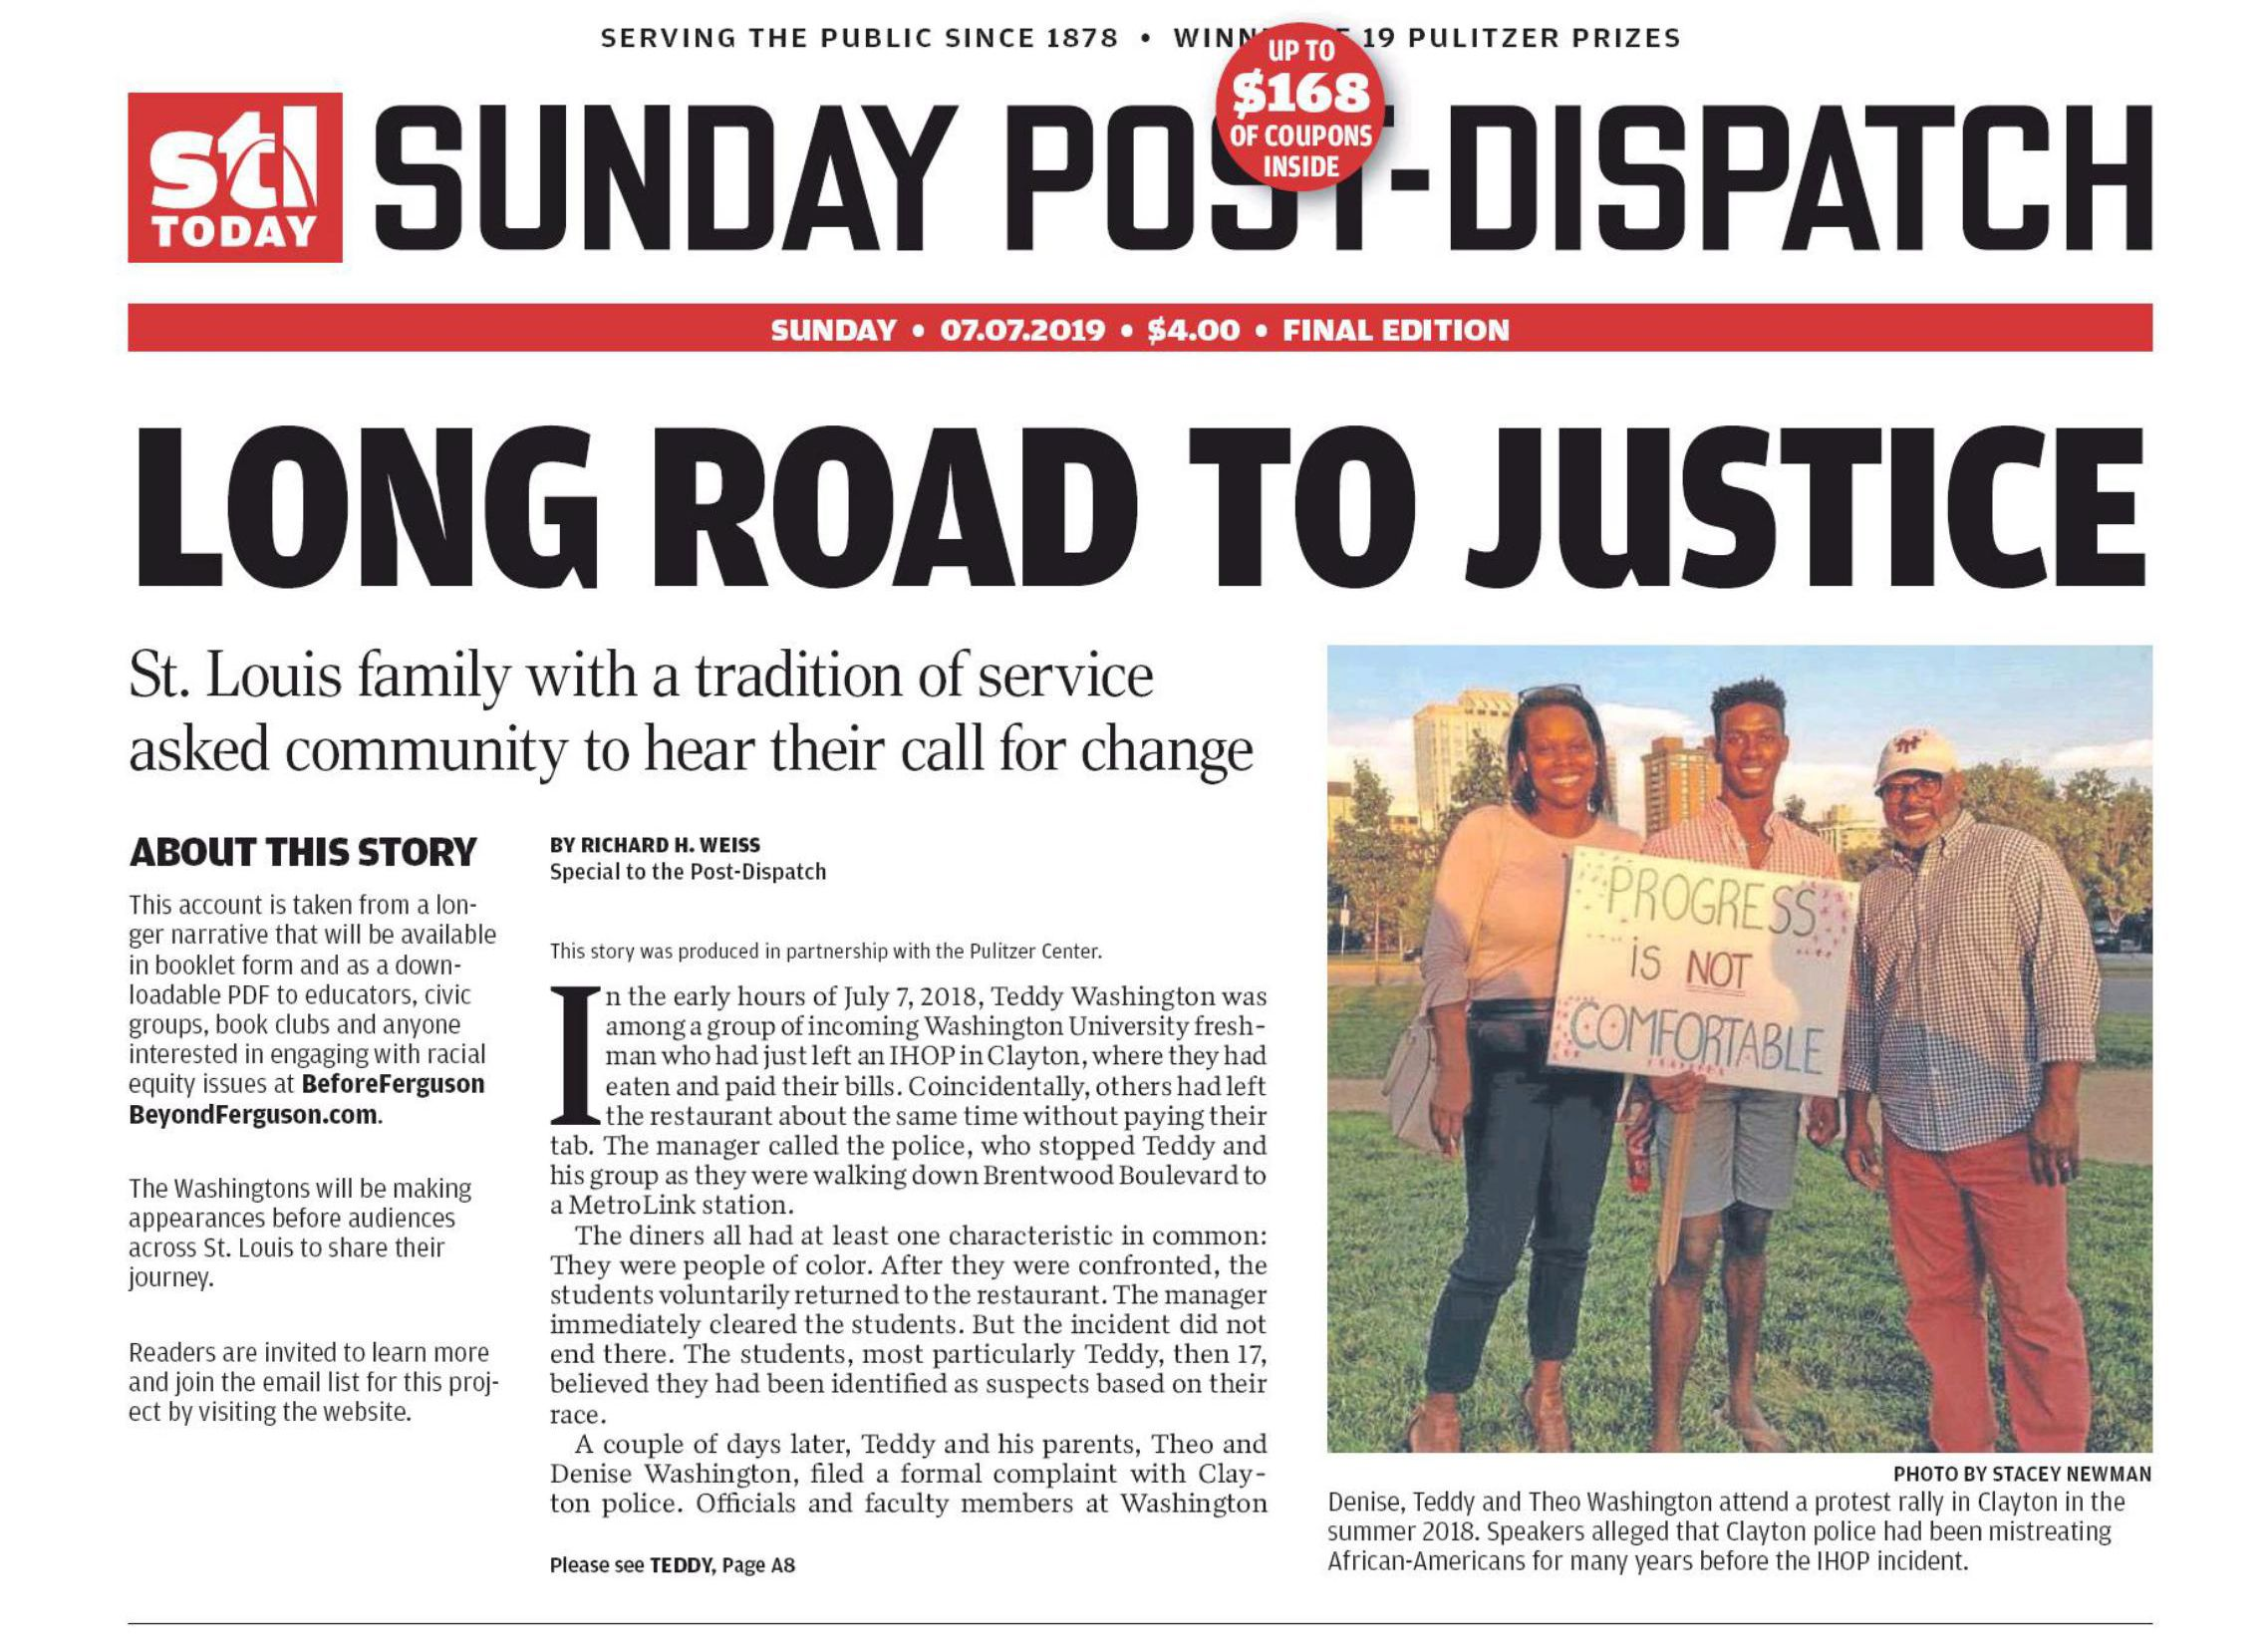 Before Ferguson Beyond Ferguson was featured on the front page of The St. Louis Post-Dispatch. Image courtesy the St. Louis Post-Dispatch. United States, 2019.